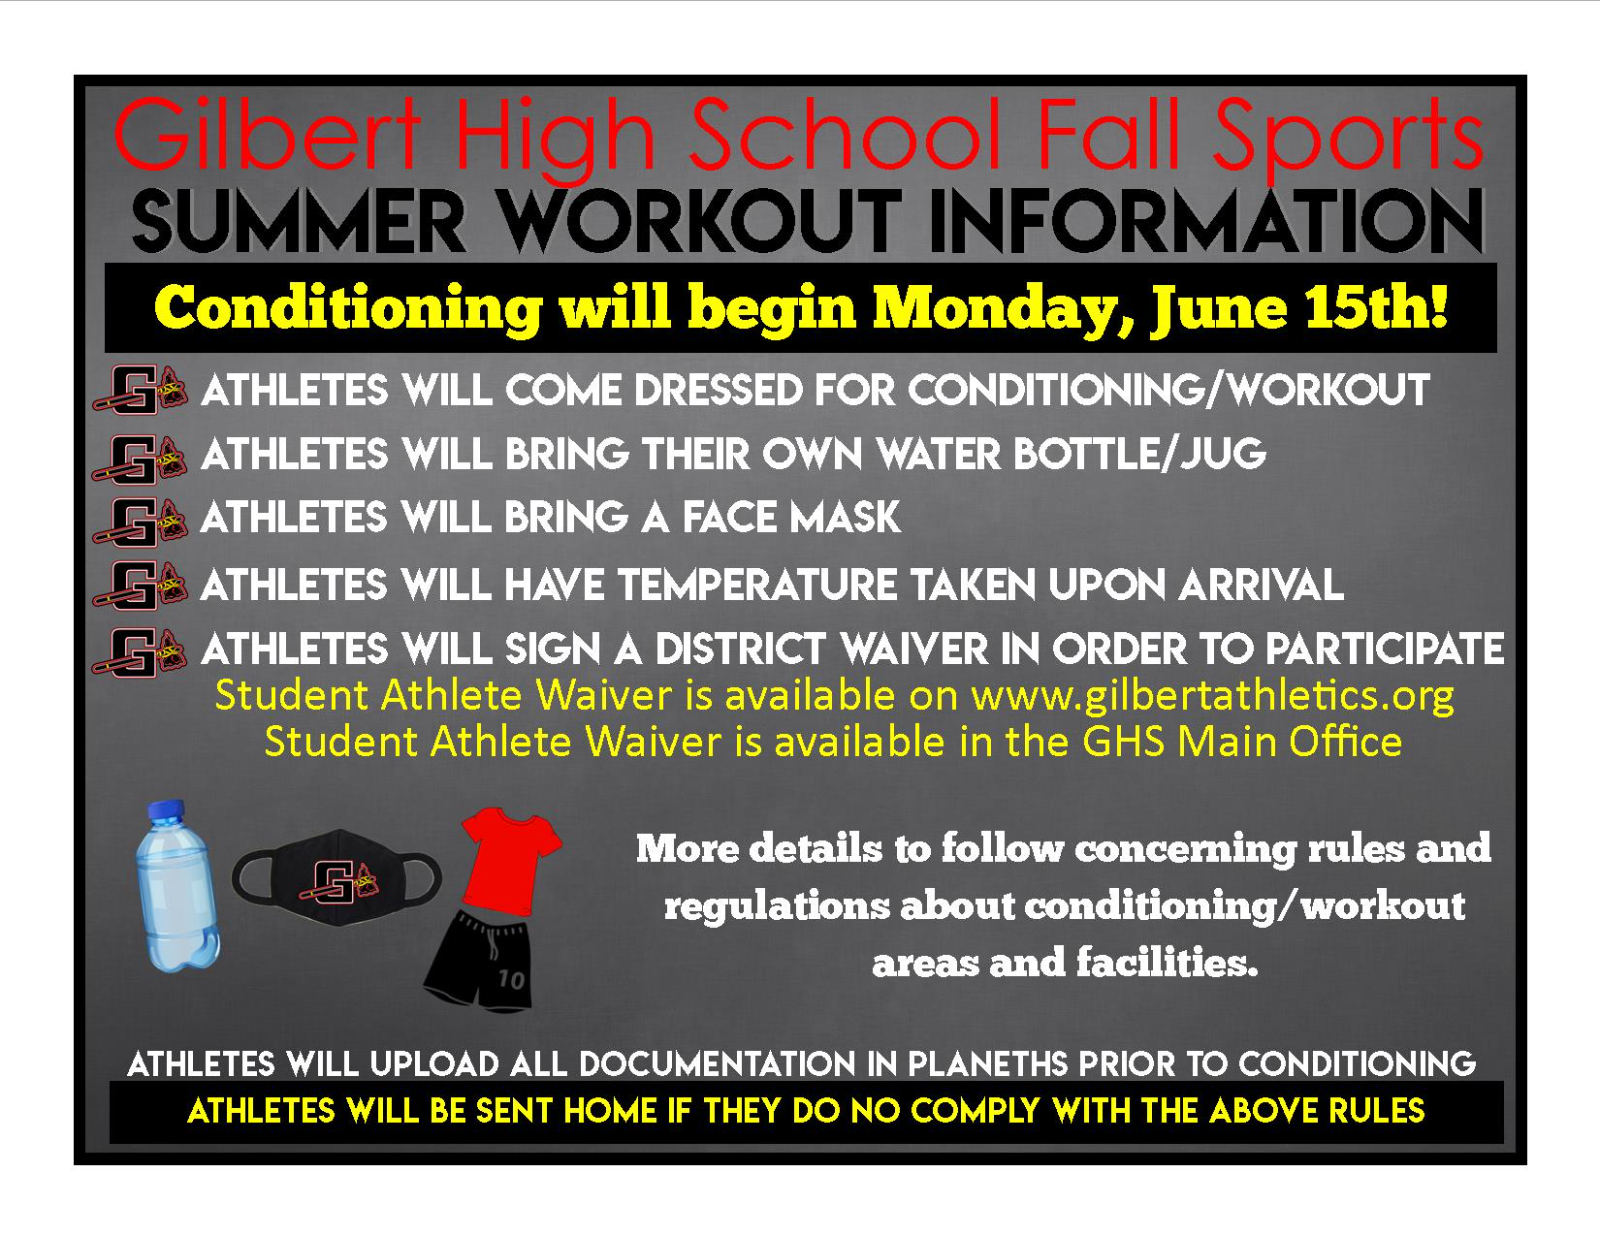 Summer Conditioning for Fall Sports Begins Monday, June 15th!